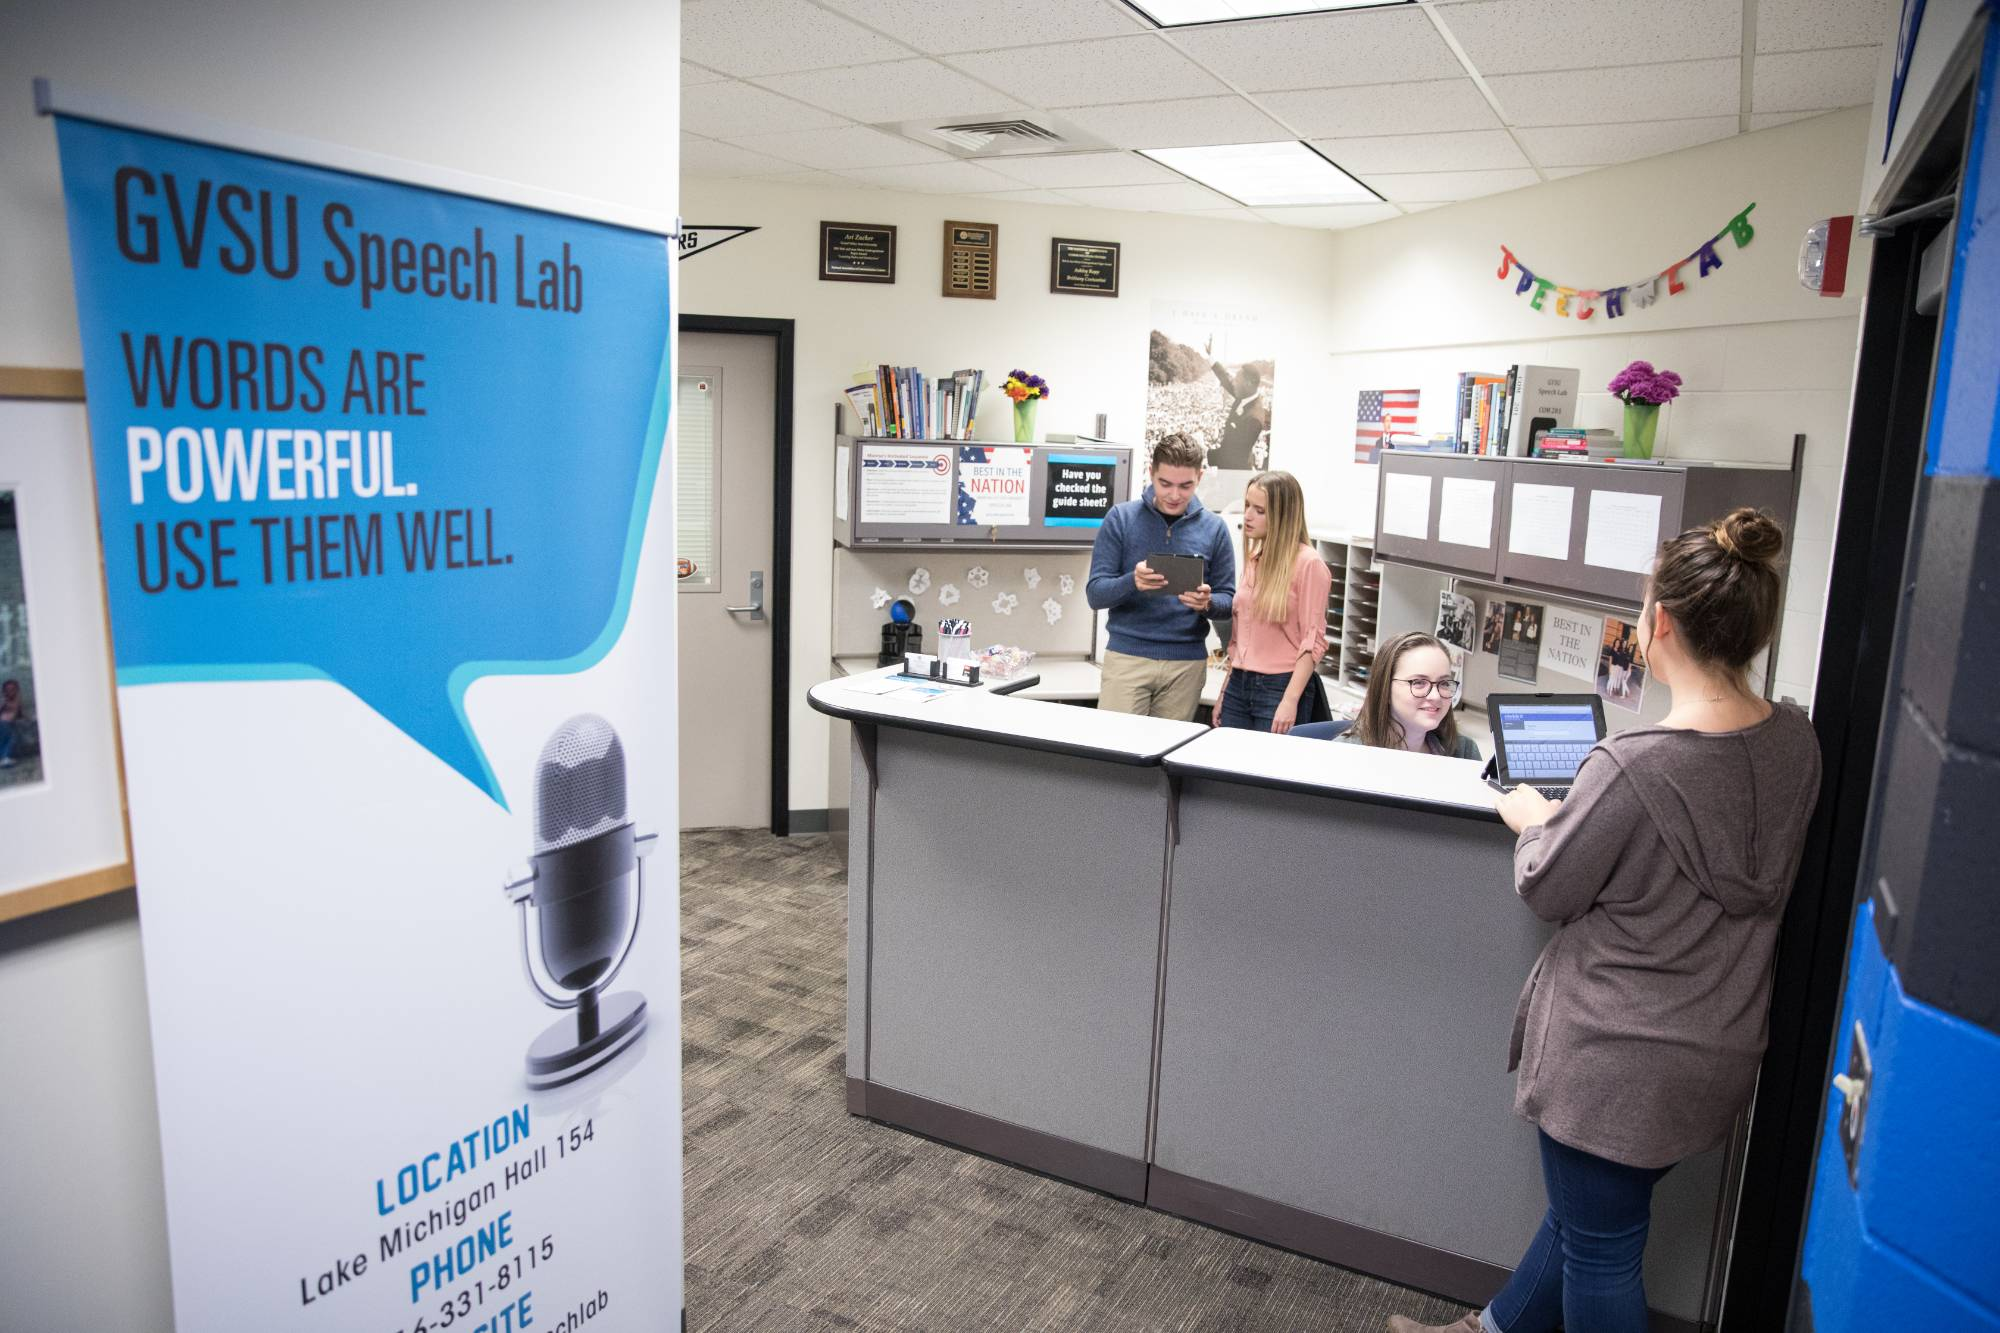 The GVSU Speech Lab can help you write speeches for courses